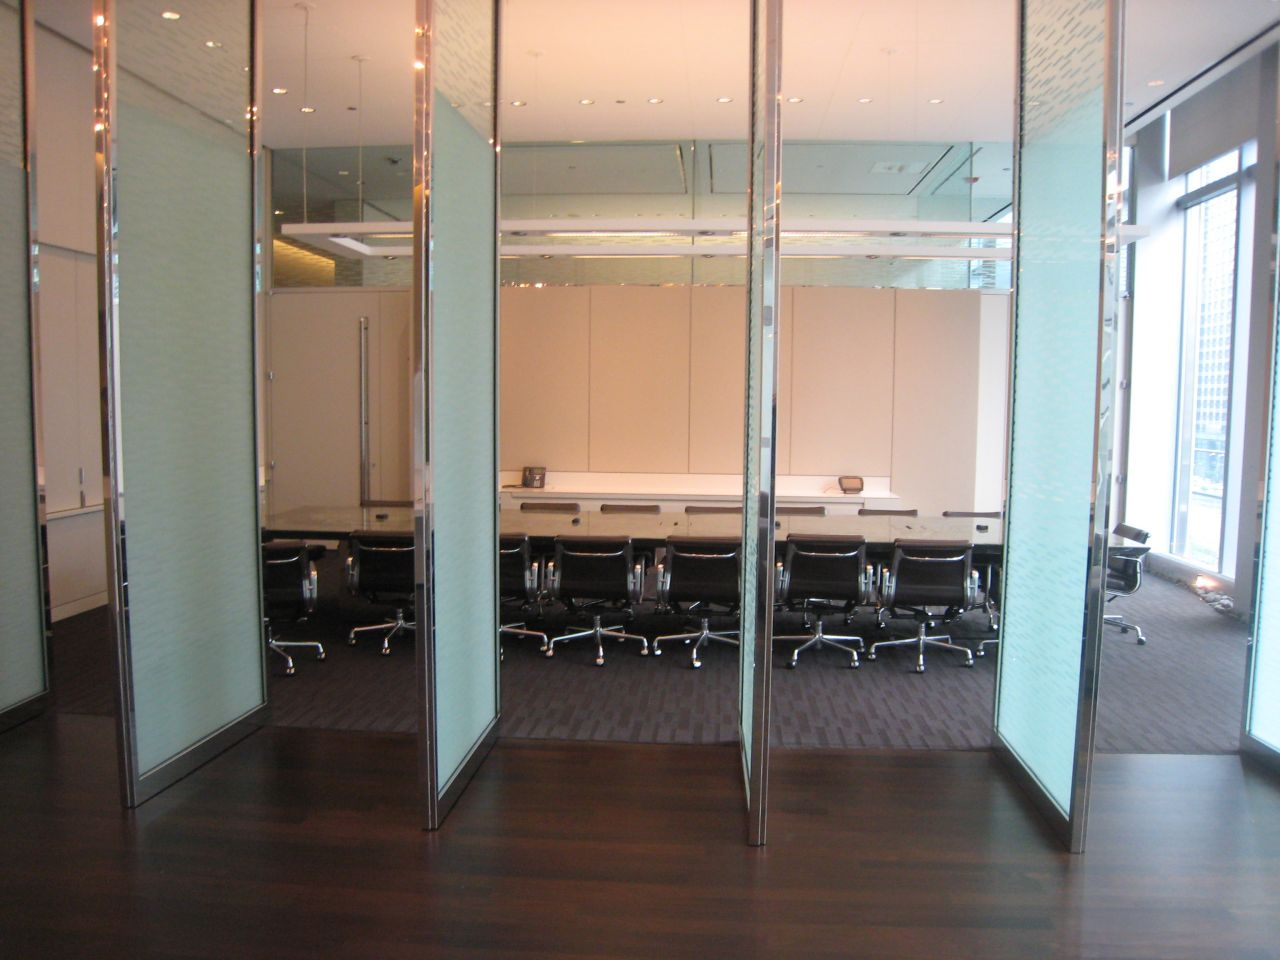 The 6th floor conference room (glass doors close at the push of a button).